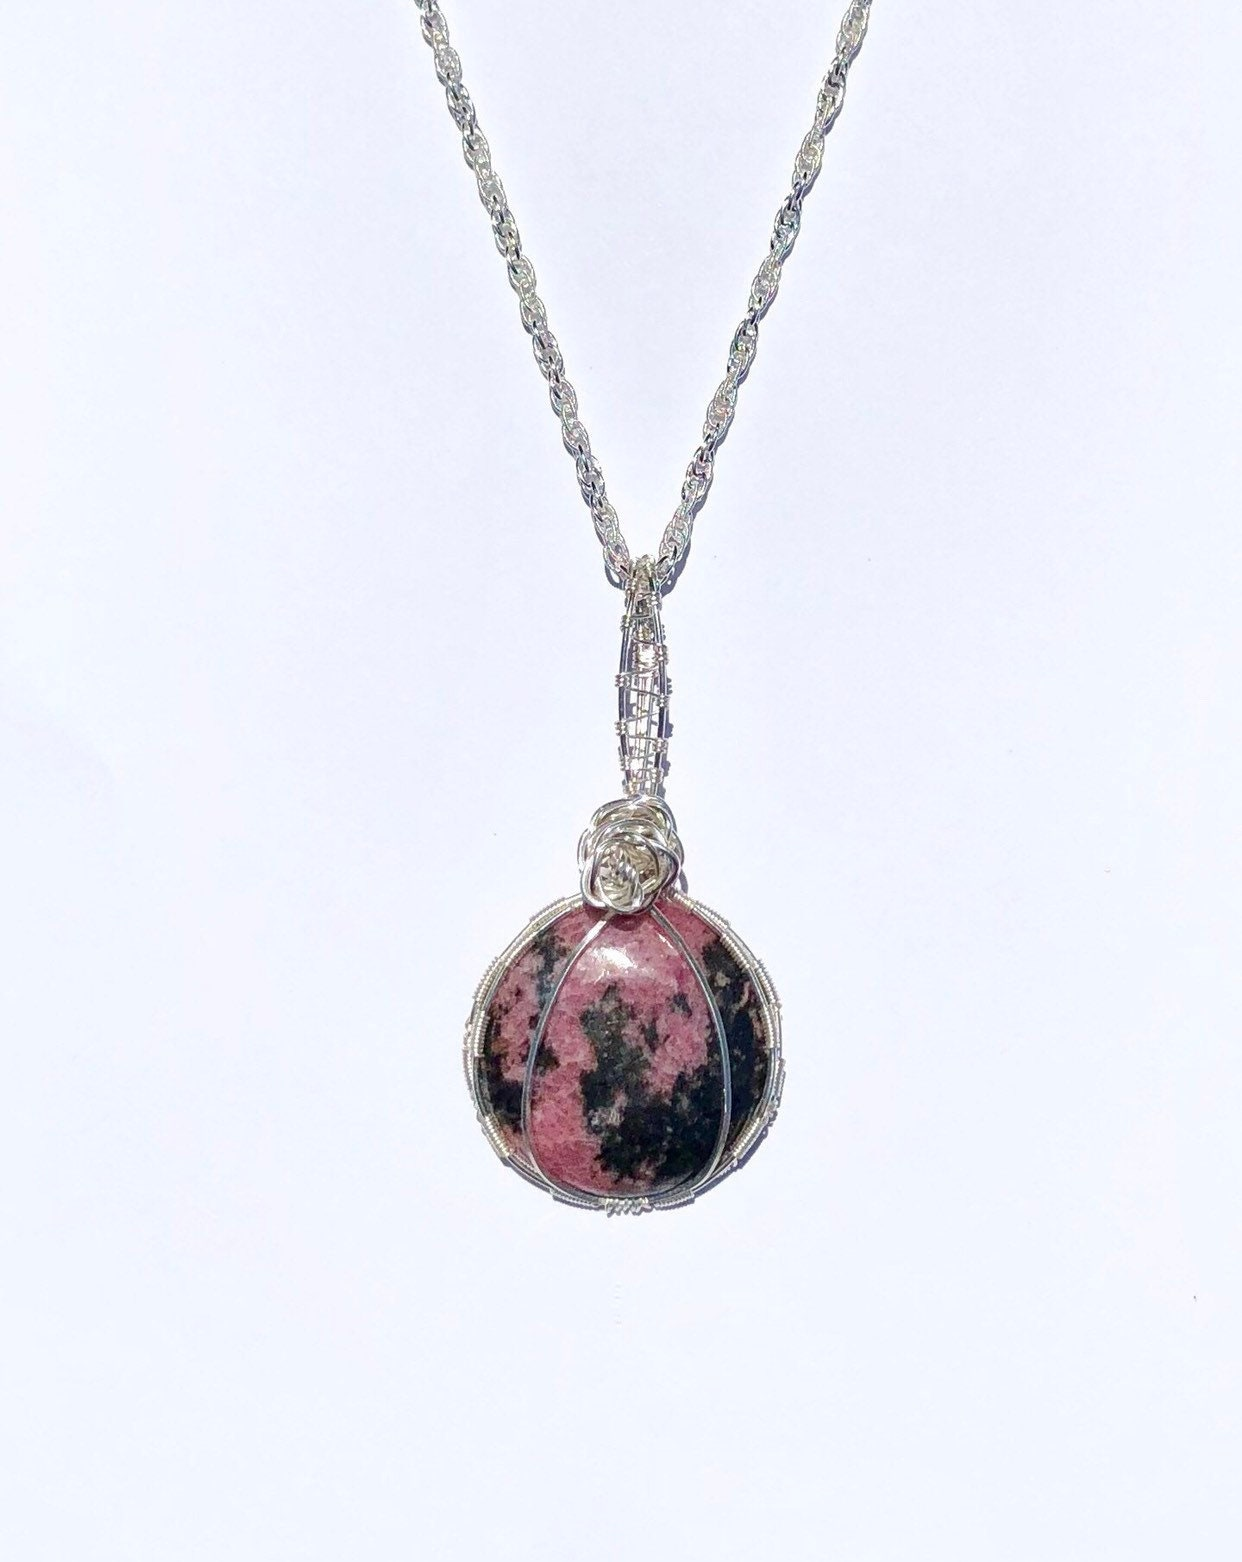 Rhodonite Pendant Necklace/ Rhodonite Necklace/ Pink and